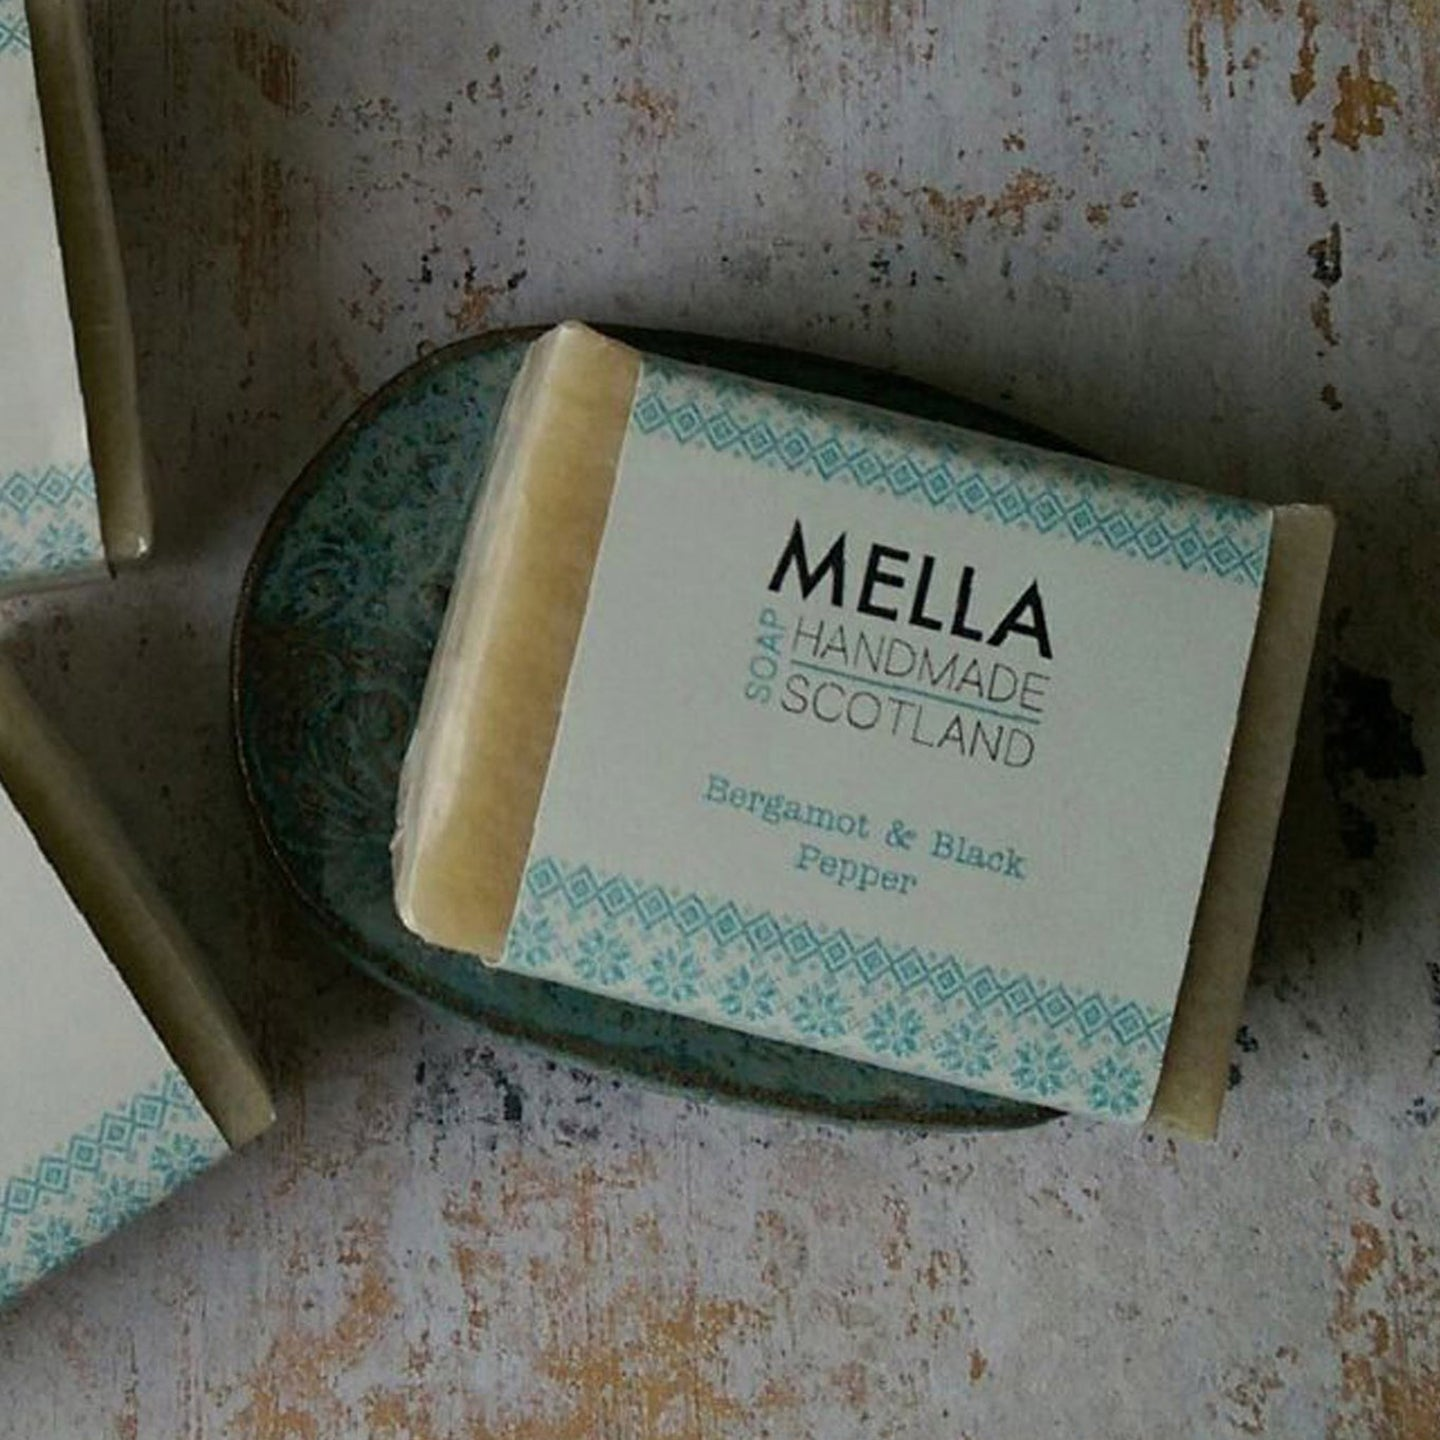 Mella - Bergamot & Black Pepper